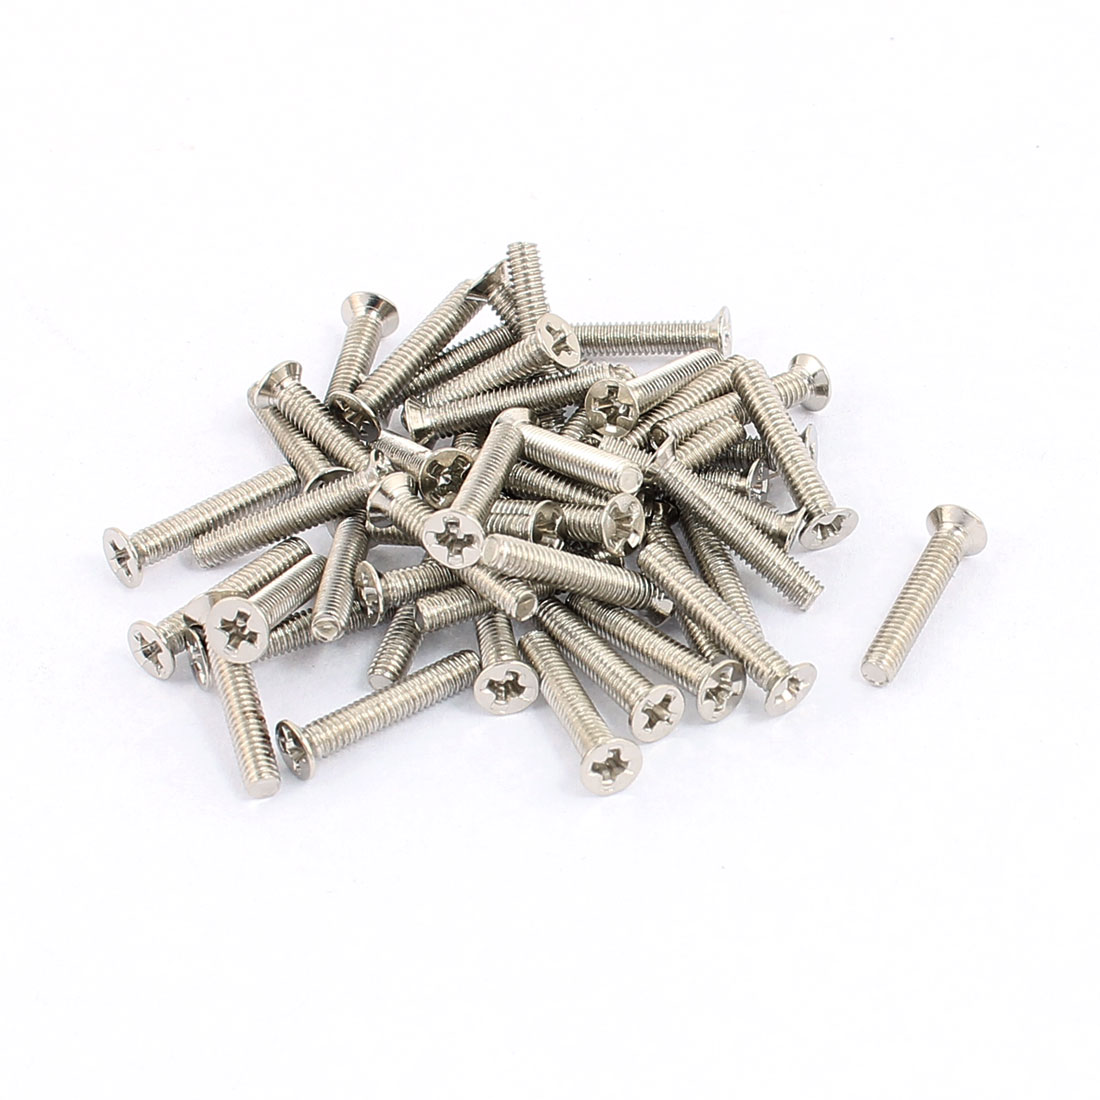 50 Pcs M2.5x14mm Stainless Steel Countersunk Flat Head Phillips Machine Screws Bolts